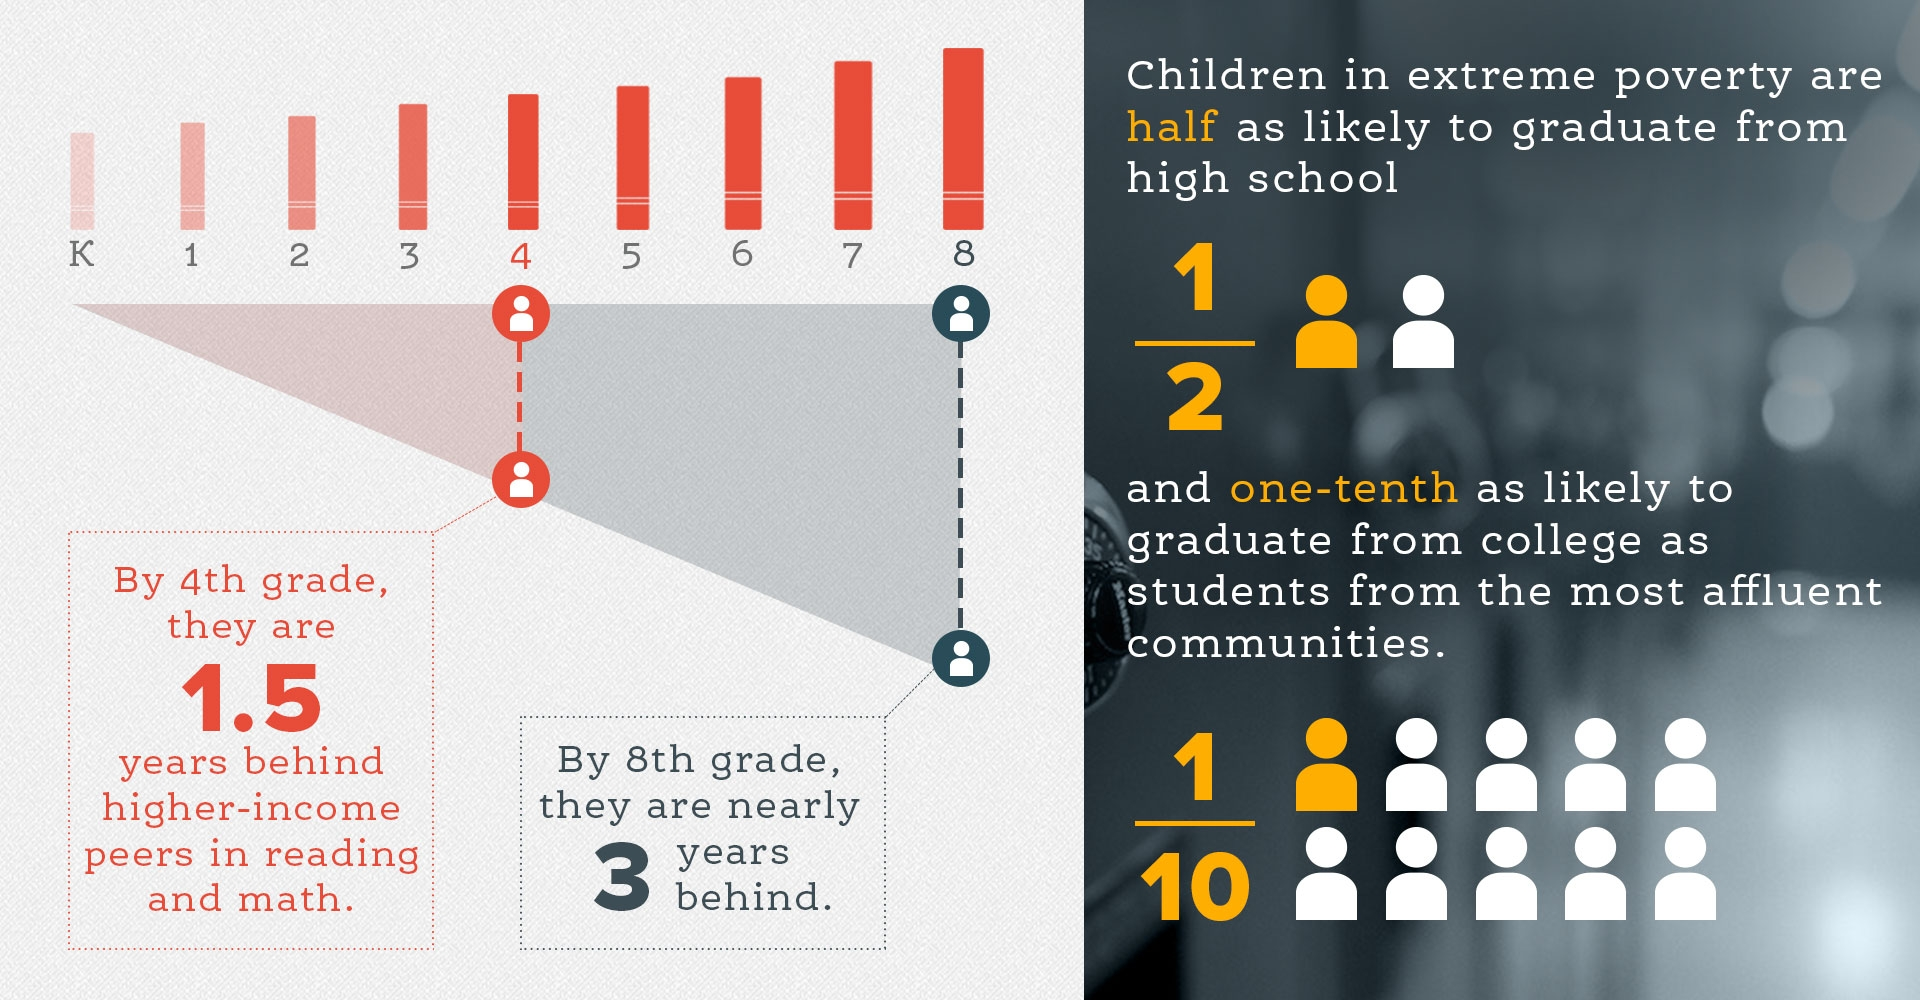 "Infographic with two charts side by side; on the left, a chart showing grade levels and reads ""By 4th grade, they are 1.5 years behind higher-income peers in reading and math; by 8th grade, they are nearly 3 years behind;"" on the right: ""Children in extreme poverty are less than half as likely to graduate from high school; they are 1/10th as likely to graduate from college."